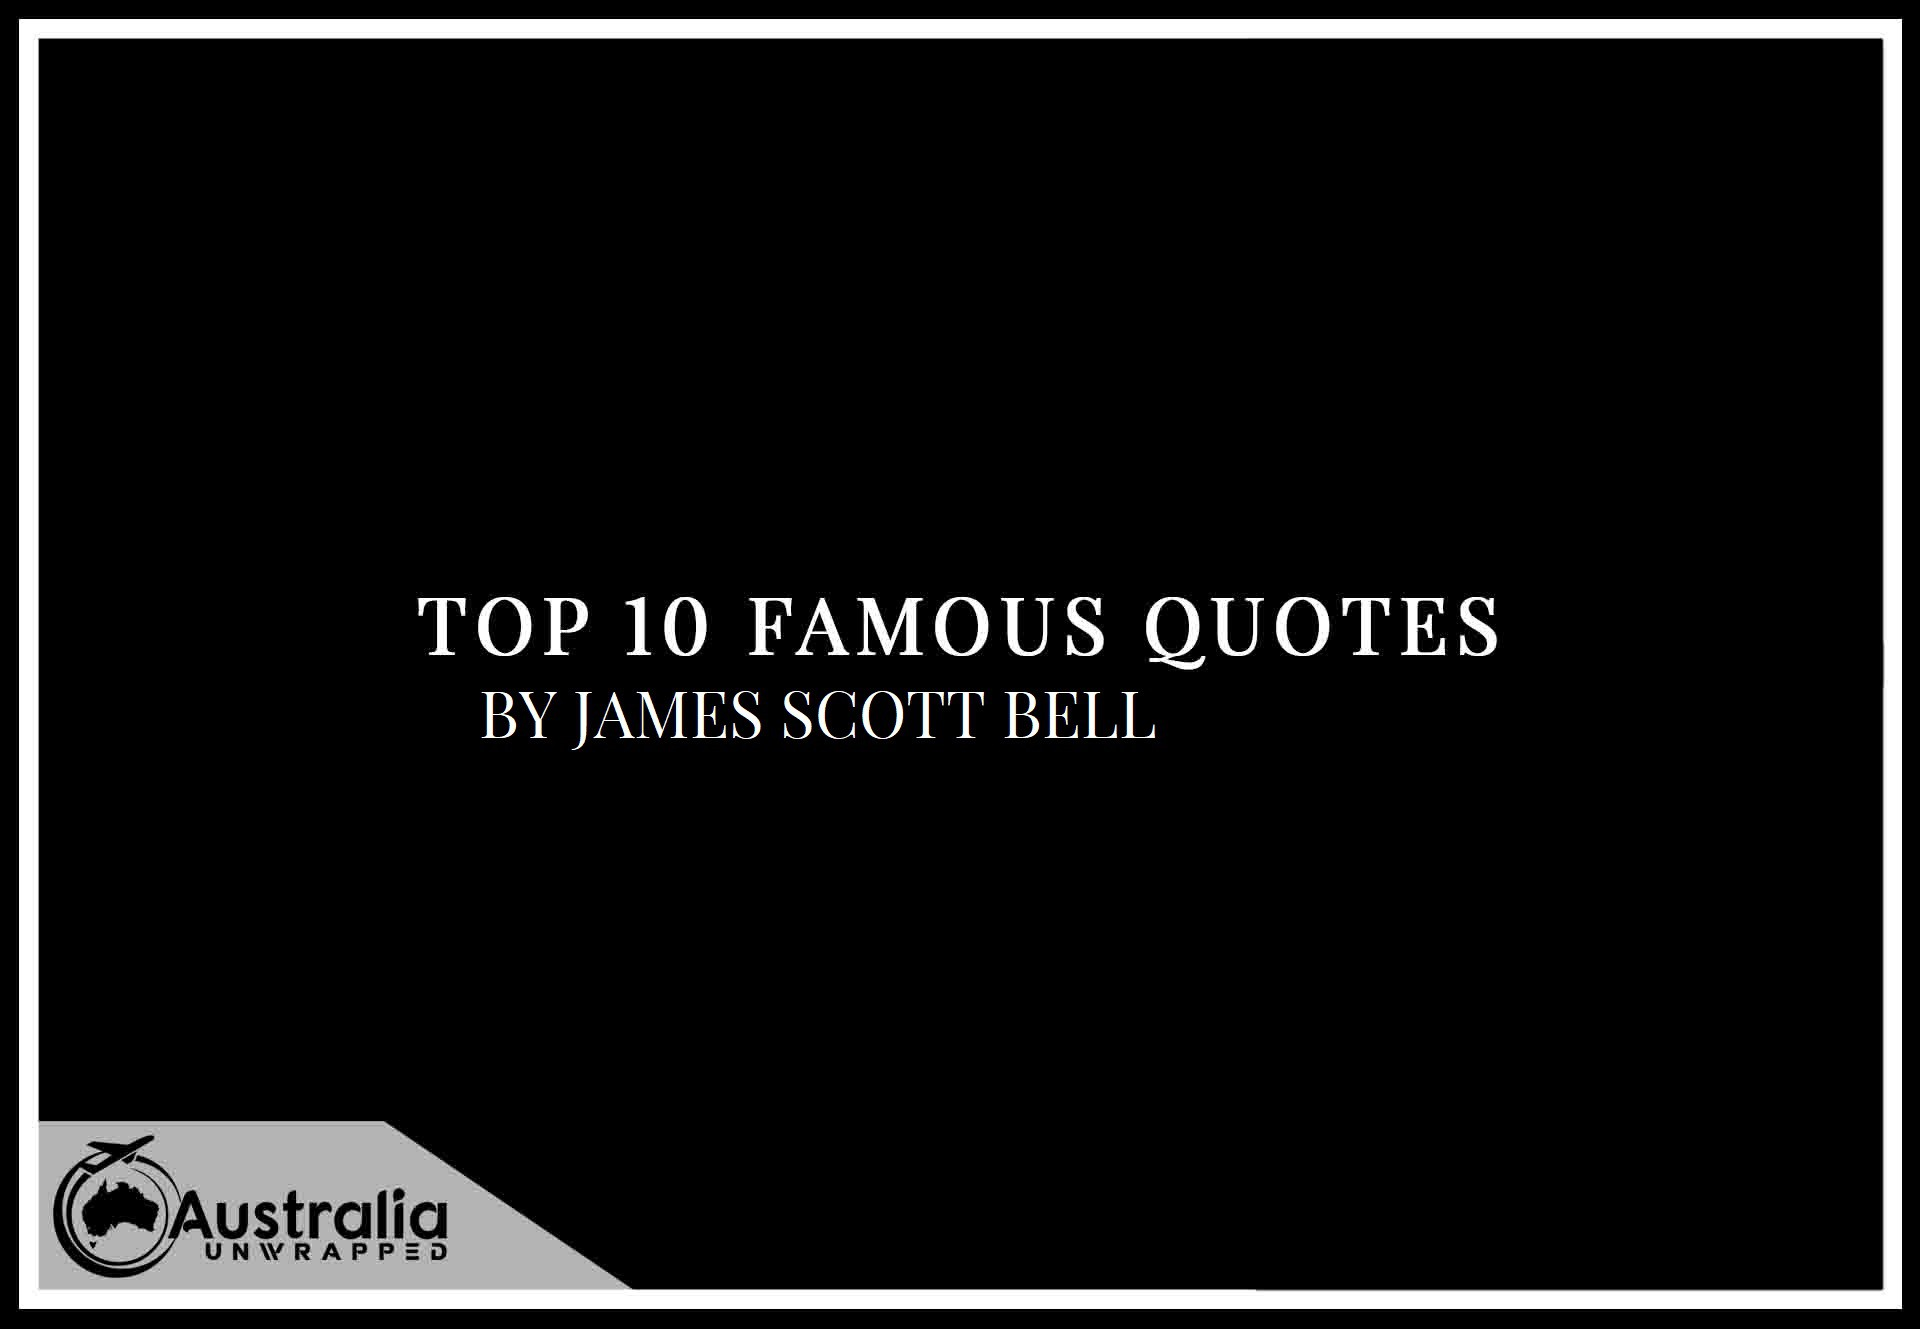 Top 10 Famous Quotes by Author James Scott Bell